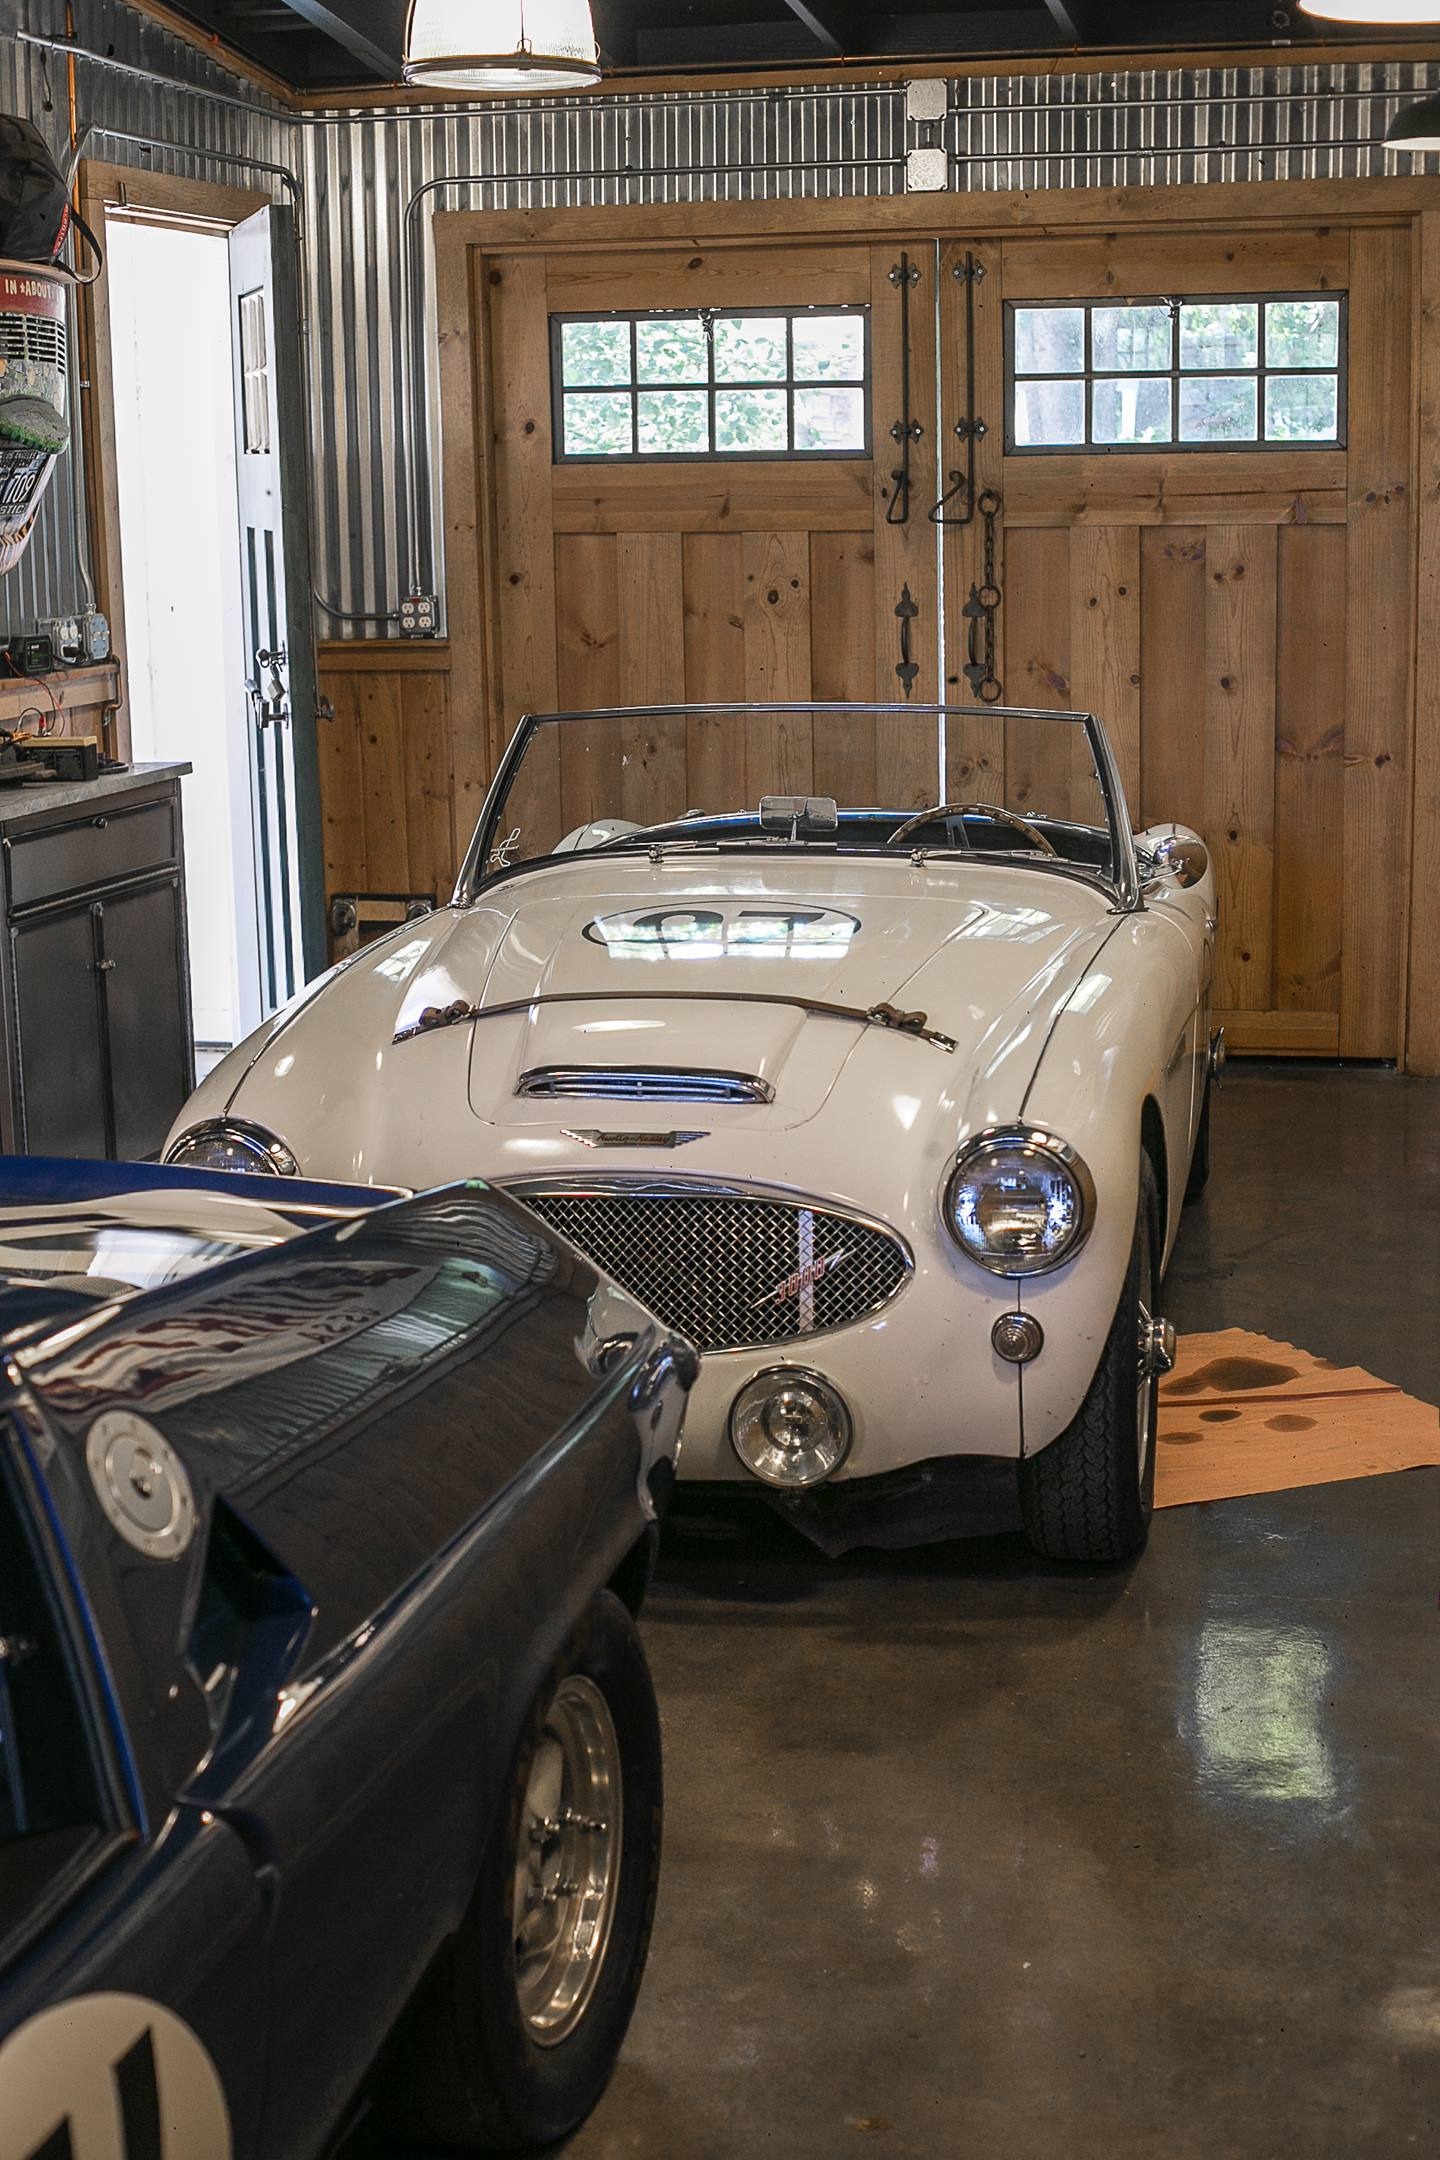 A 1960 Austin-Healey 3000 MkI and a 1970 Lotus Europa at the Caccavo garage in Thousand Oaks, California.